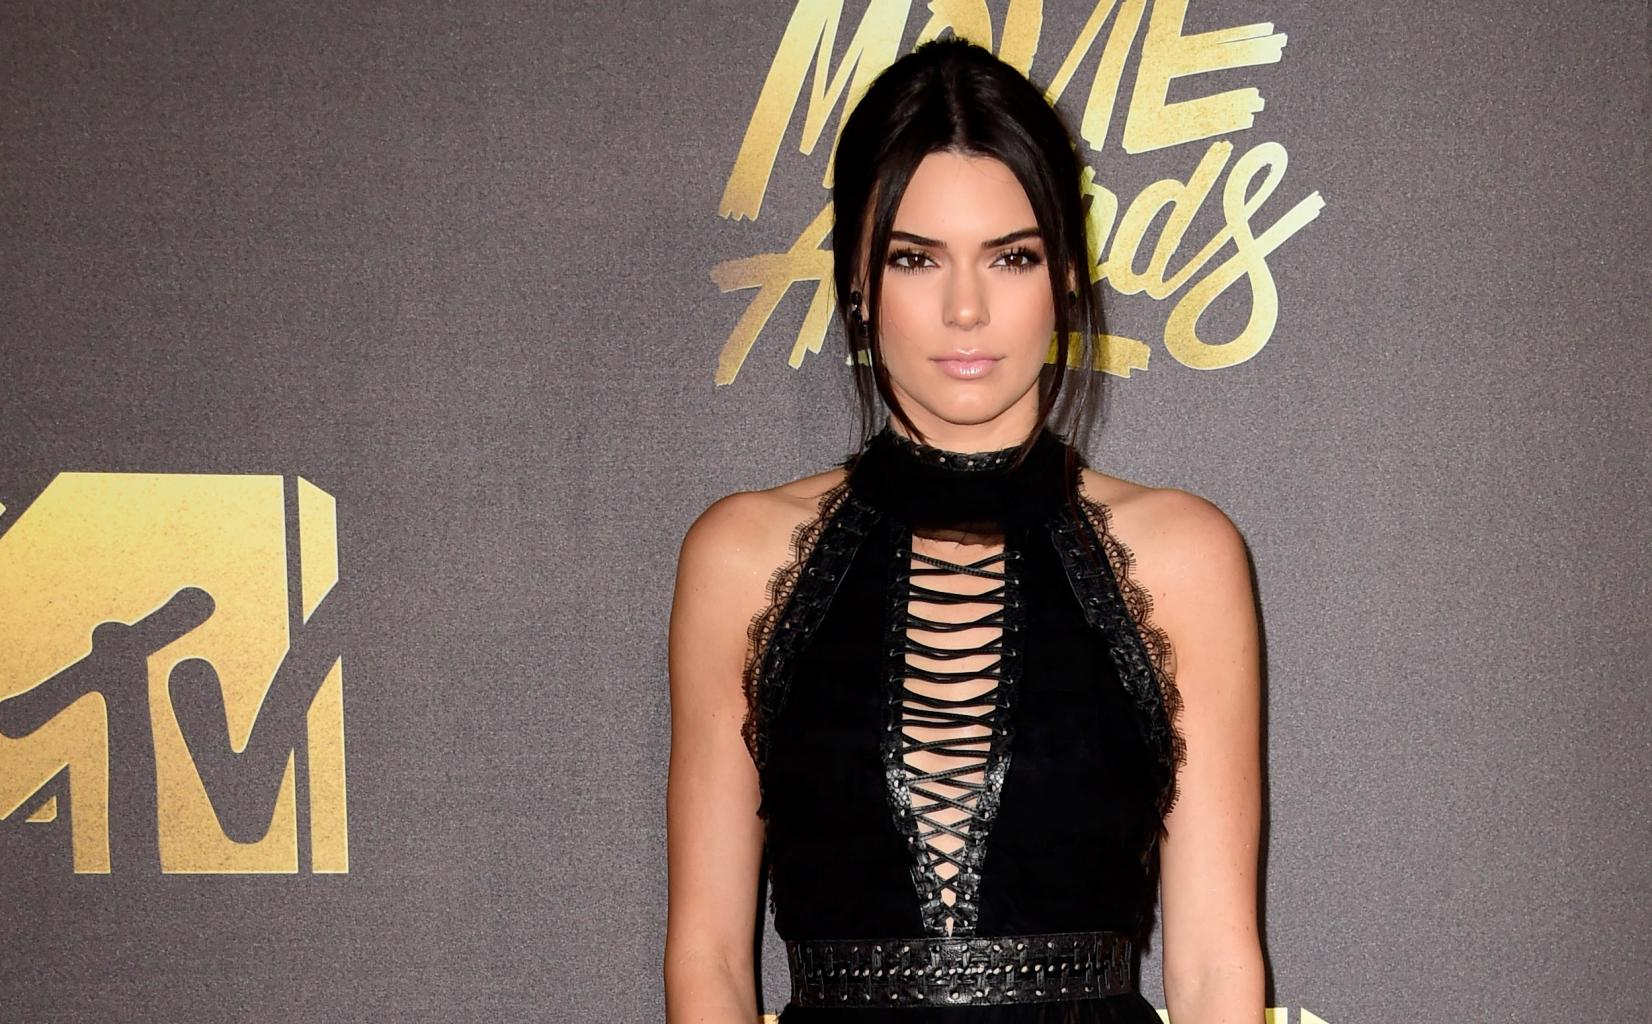 Kendall Jenner Explains Why She Loves To Go Braless: 'I'm All About Freeing The Nipple'